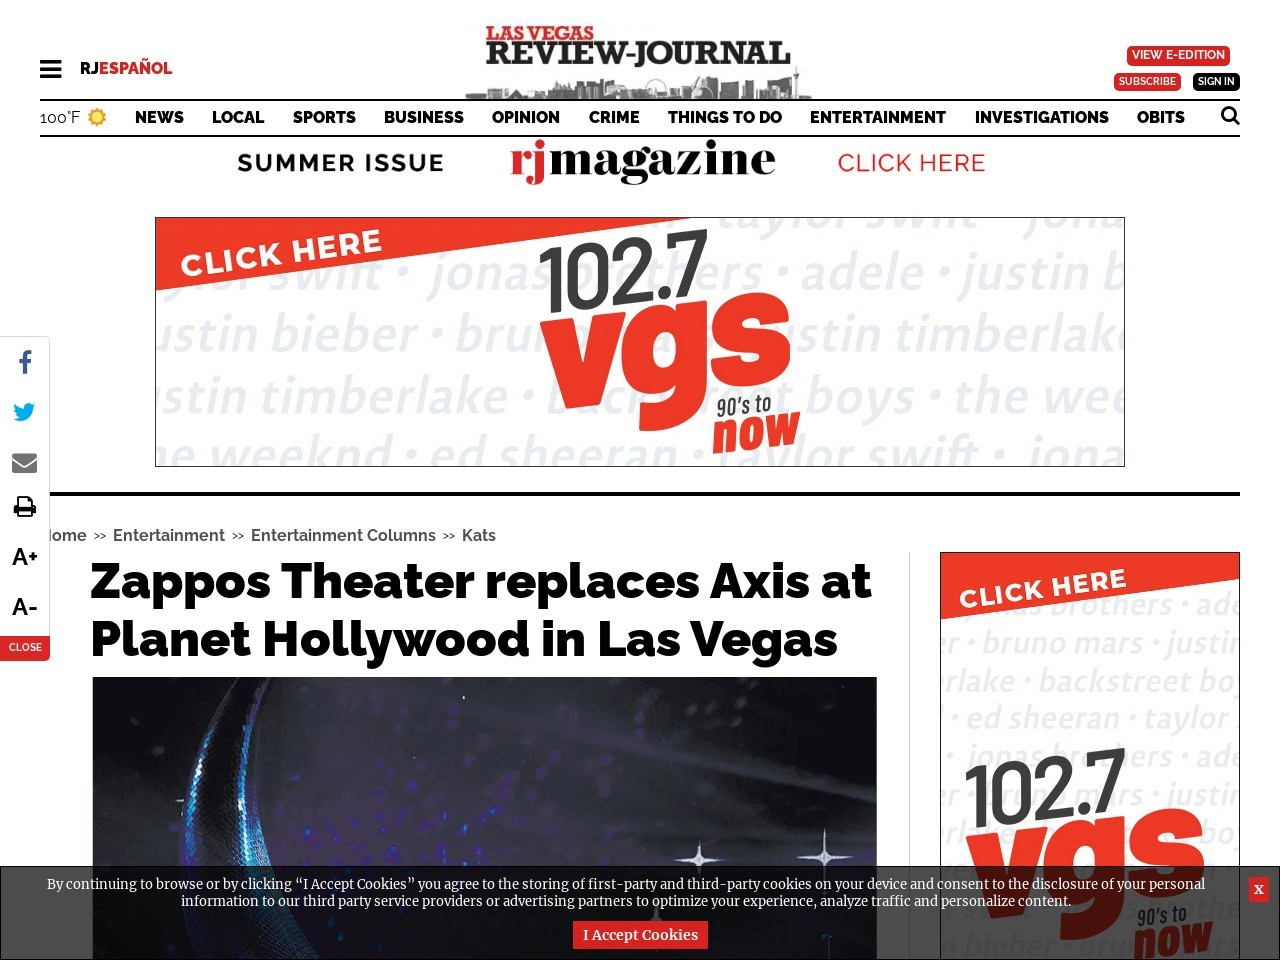 Zappos Theater replaces Axis at Planet Hollywood in Las Vegas